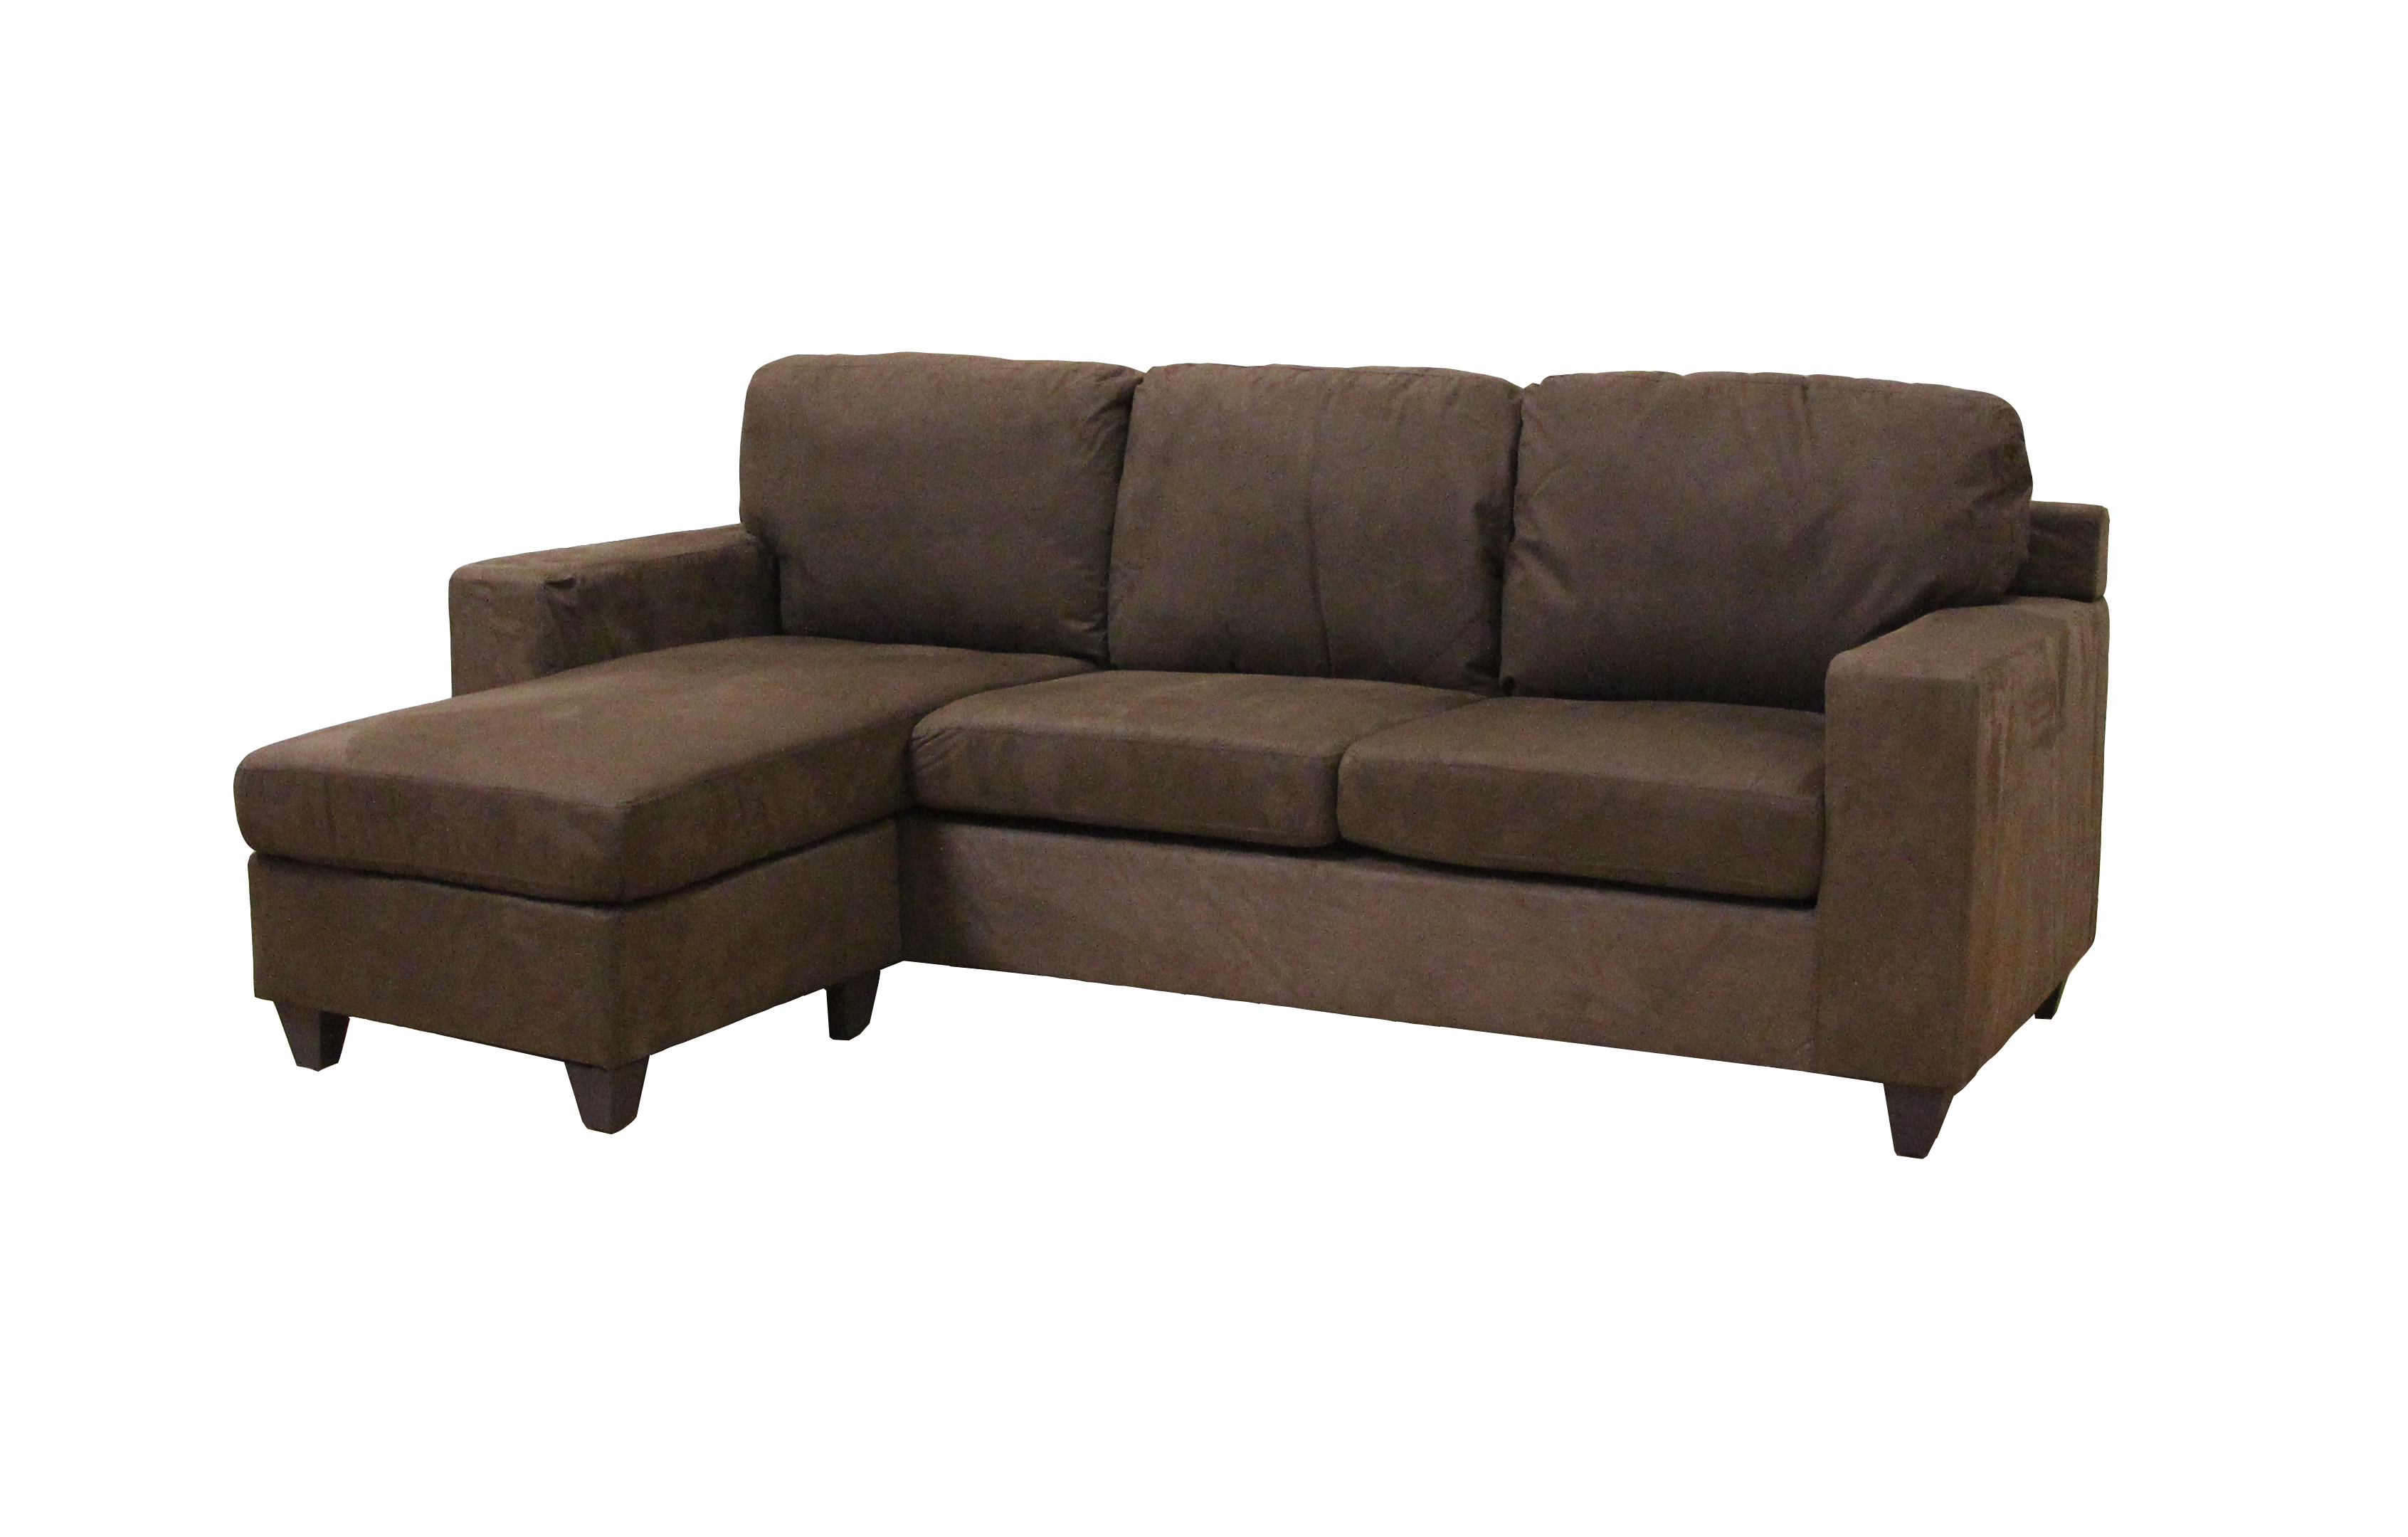 ACME Vogue Sectional Sofa, Chocolate Microfiber by Acme Furniture